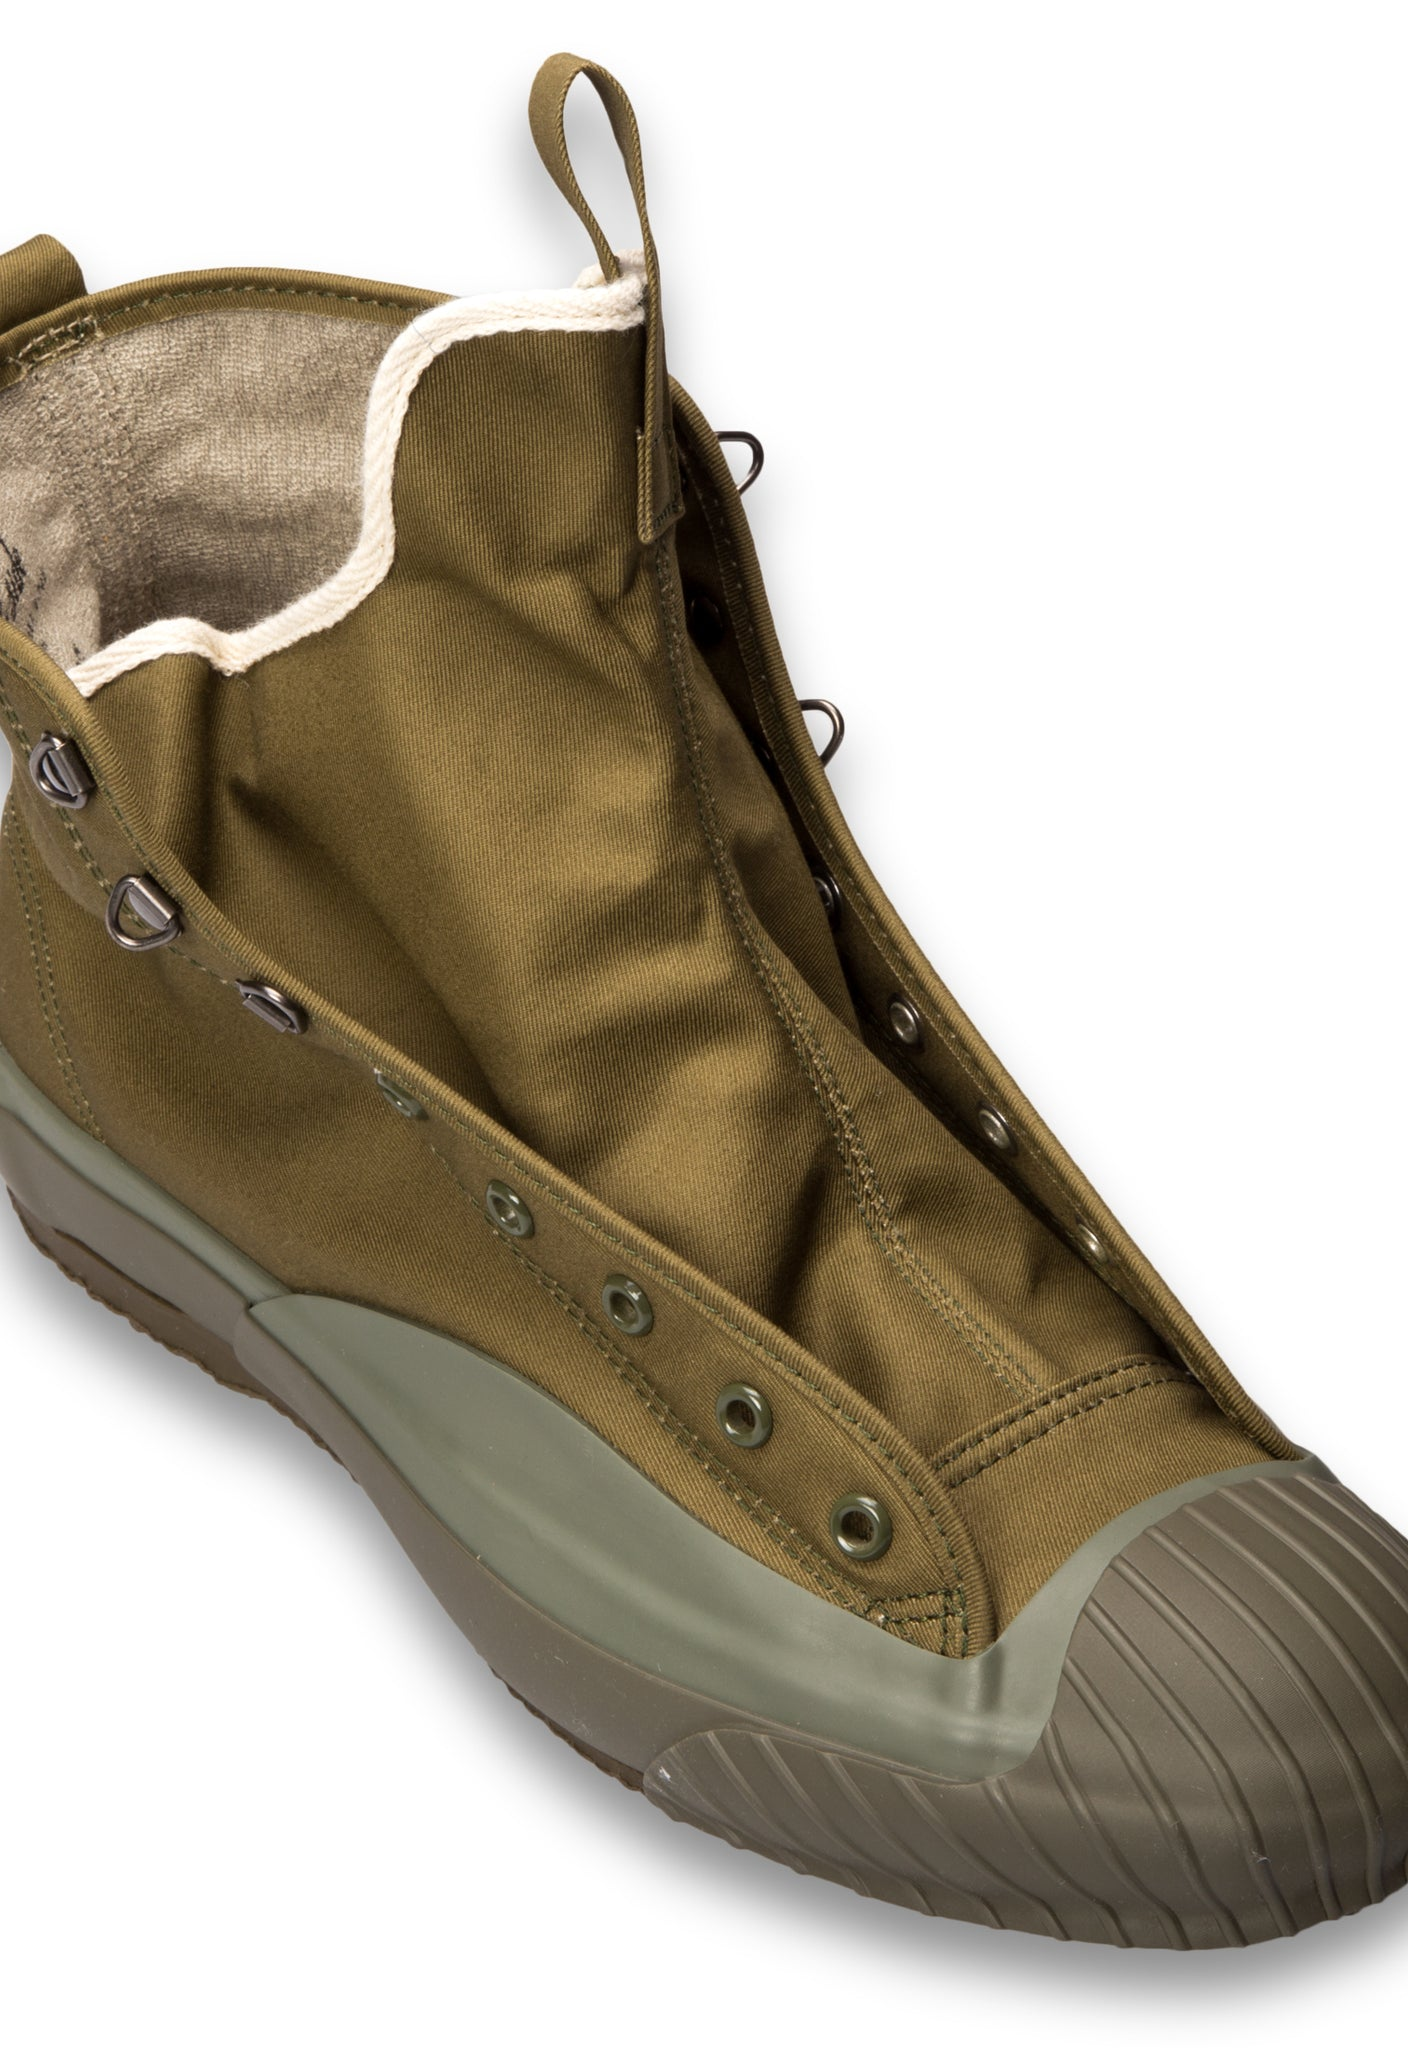 a298346c8f The Hill Side All Weather Hi Tops Boreal Forest. Product image 1 ...